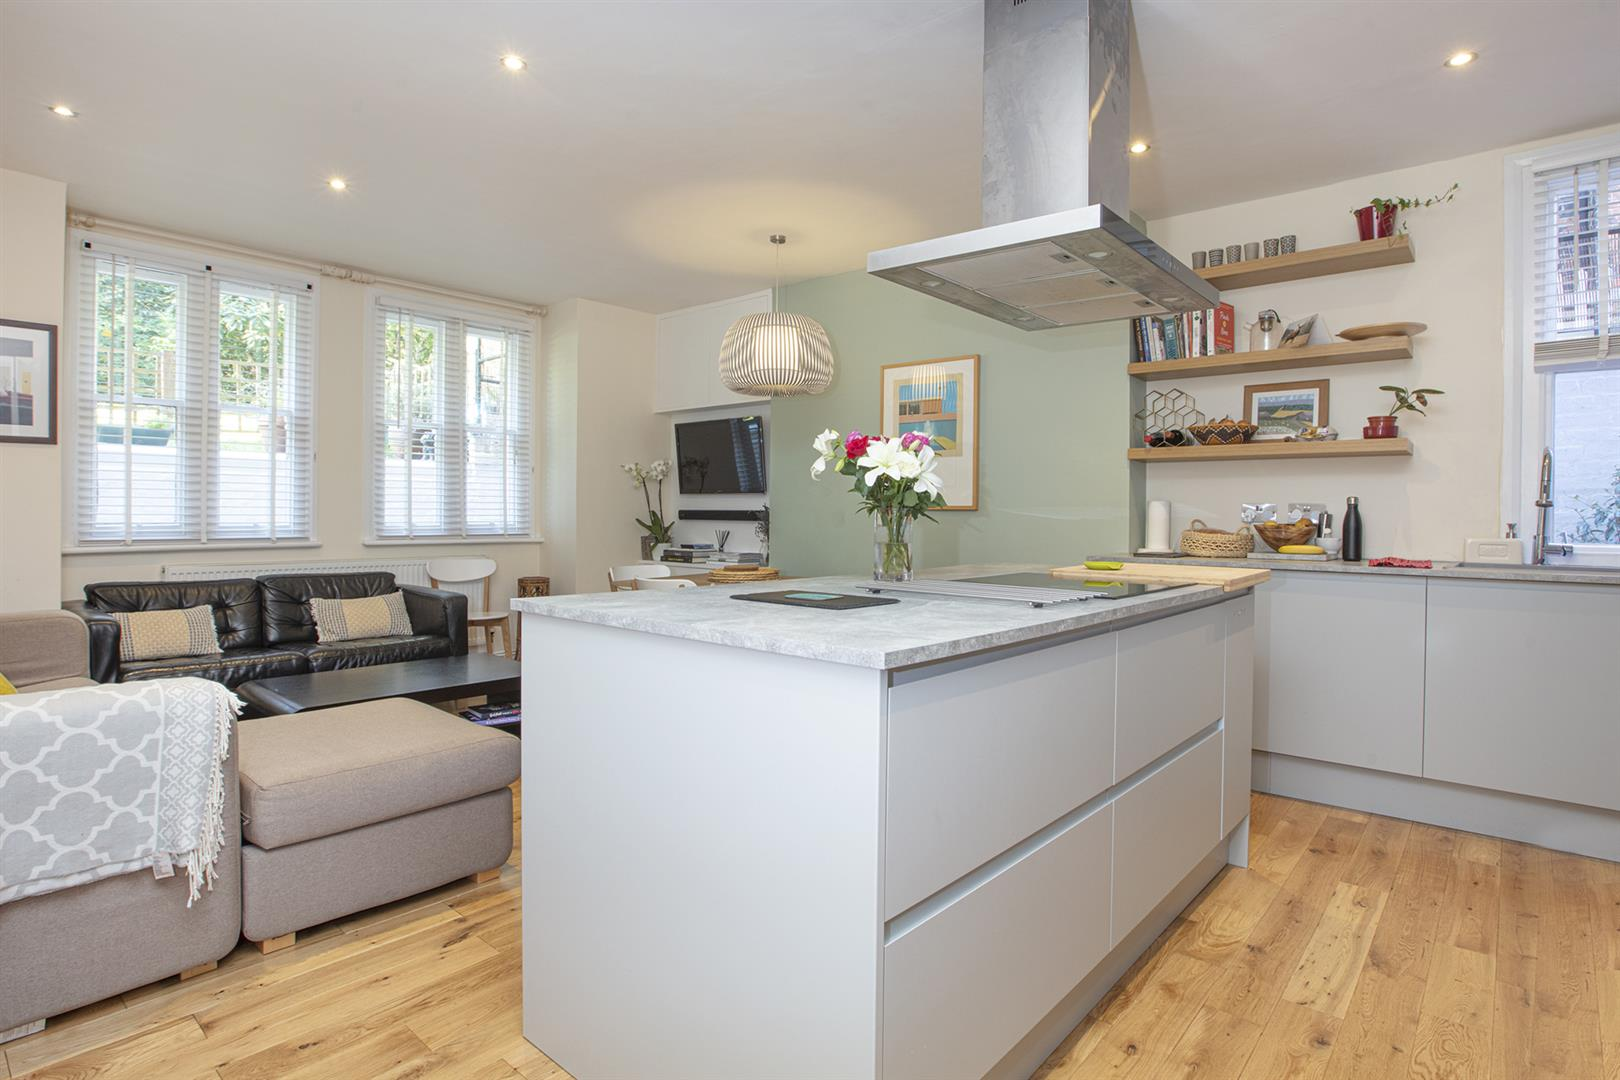 Flat - Conversion For Sale in Crystal Palace Park Road, Sydenham, SE26 698 view4